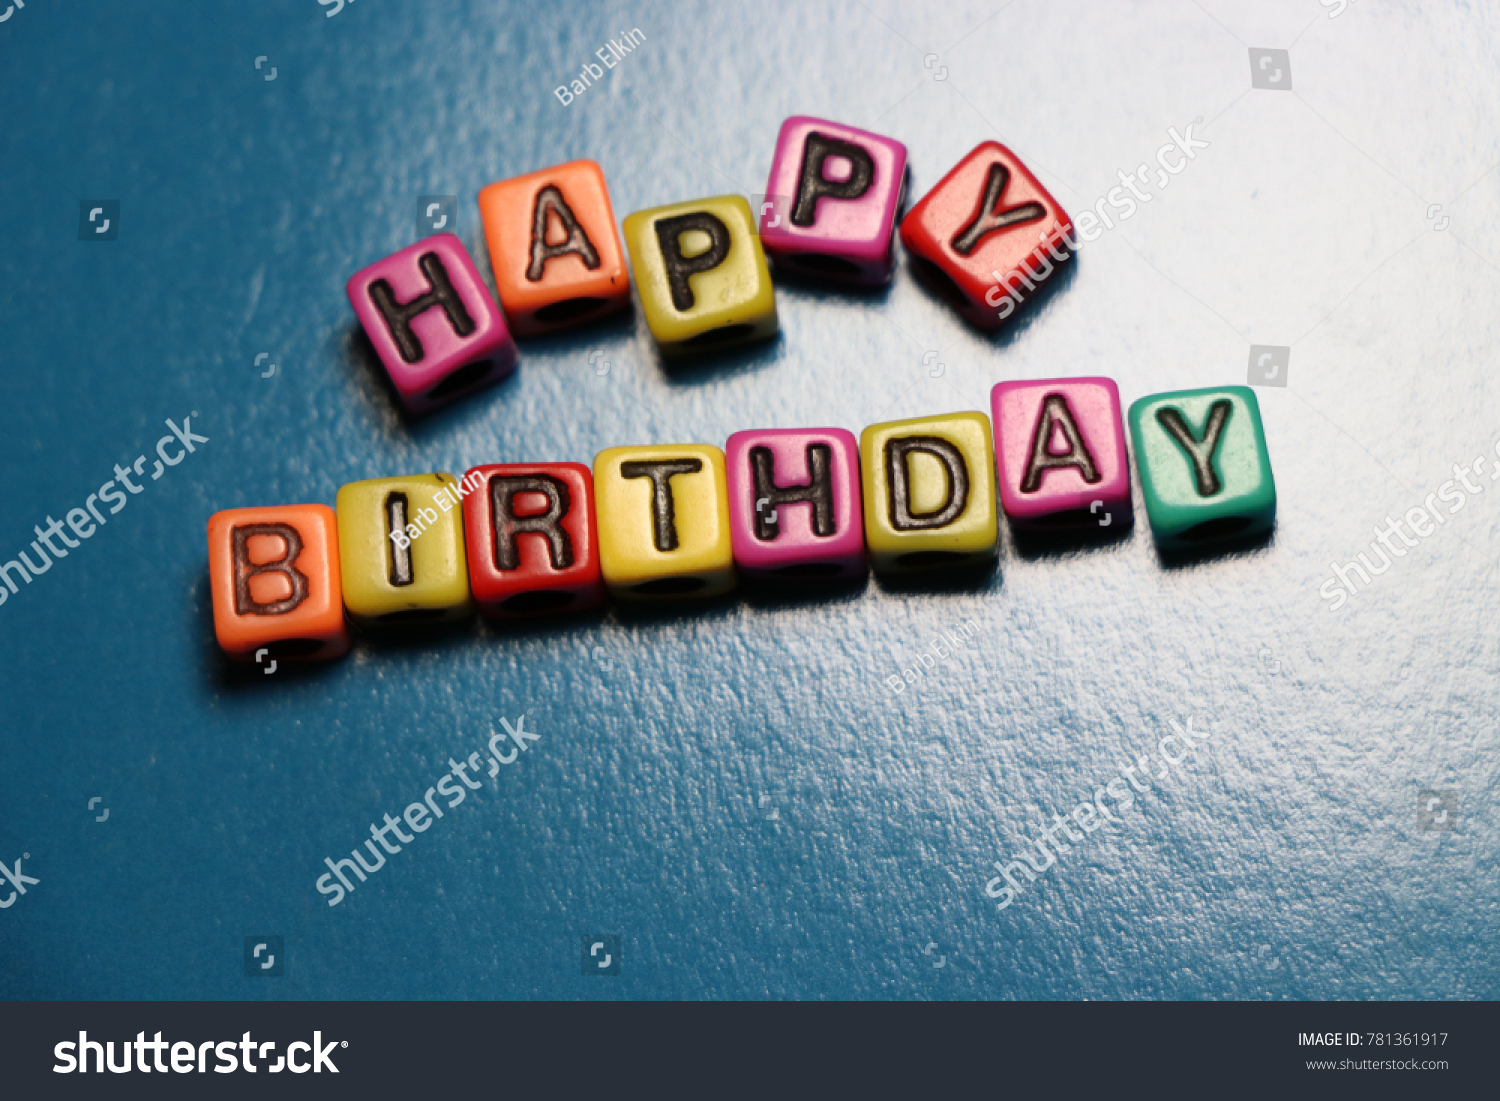 Happy birthday party card invitation 3 d stock photo safe to use happy birthday party card invitation 3d words and letters spelled in blocks and beads thecheapjerseys Images